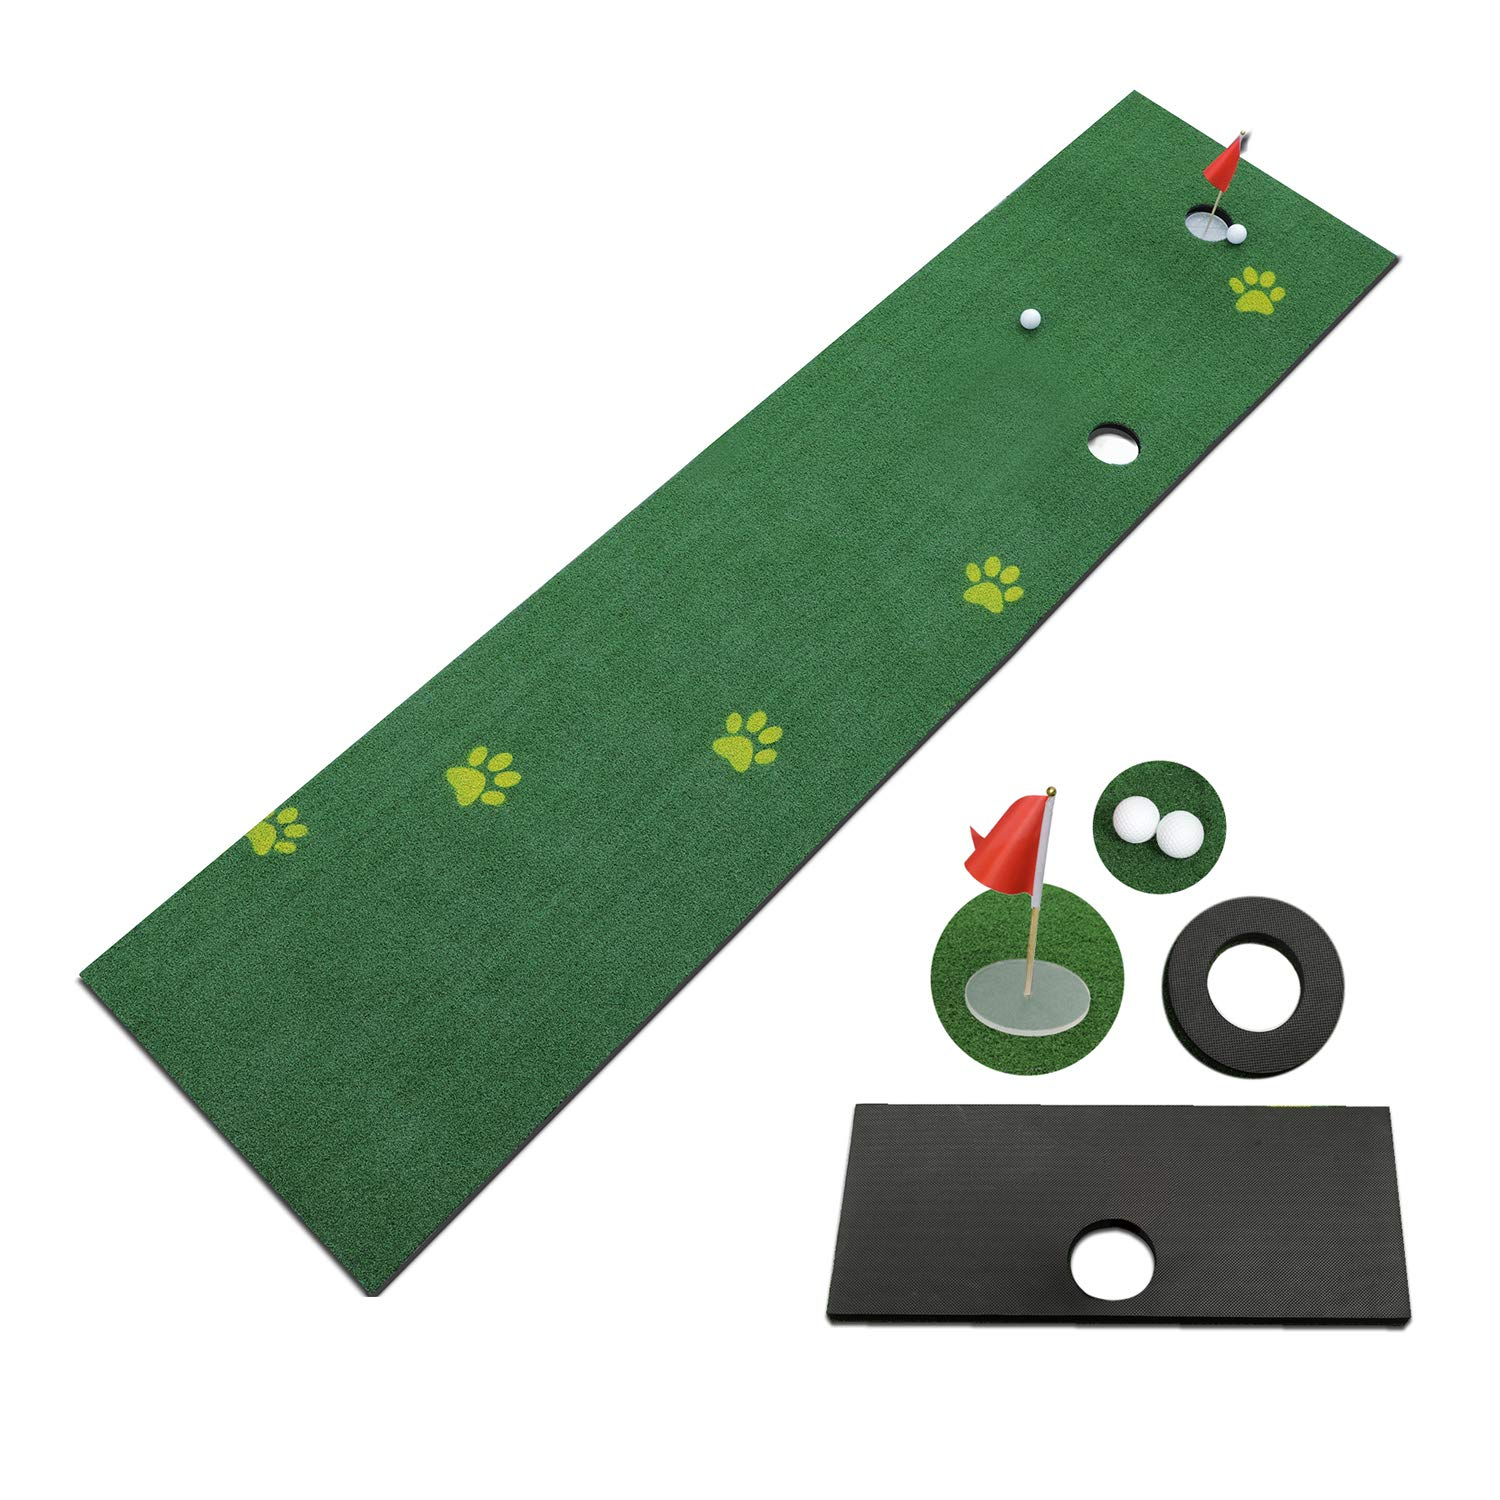 TIANNBU Golf Putting Mat Ajustable Slope Putting Green Easy Storage Synthetic Turf 2.4×10ft Artificial Grass Lawn for Home Office Backyard Indoor Outdoor by TIANNBU